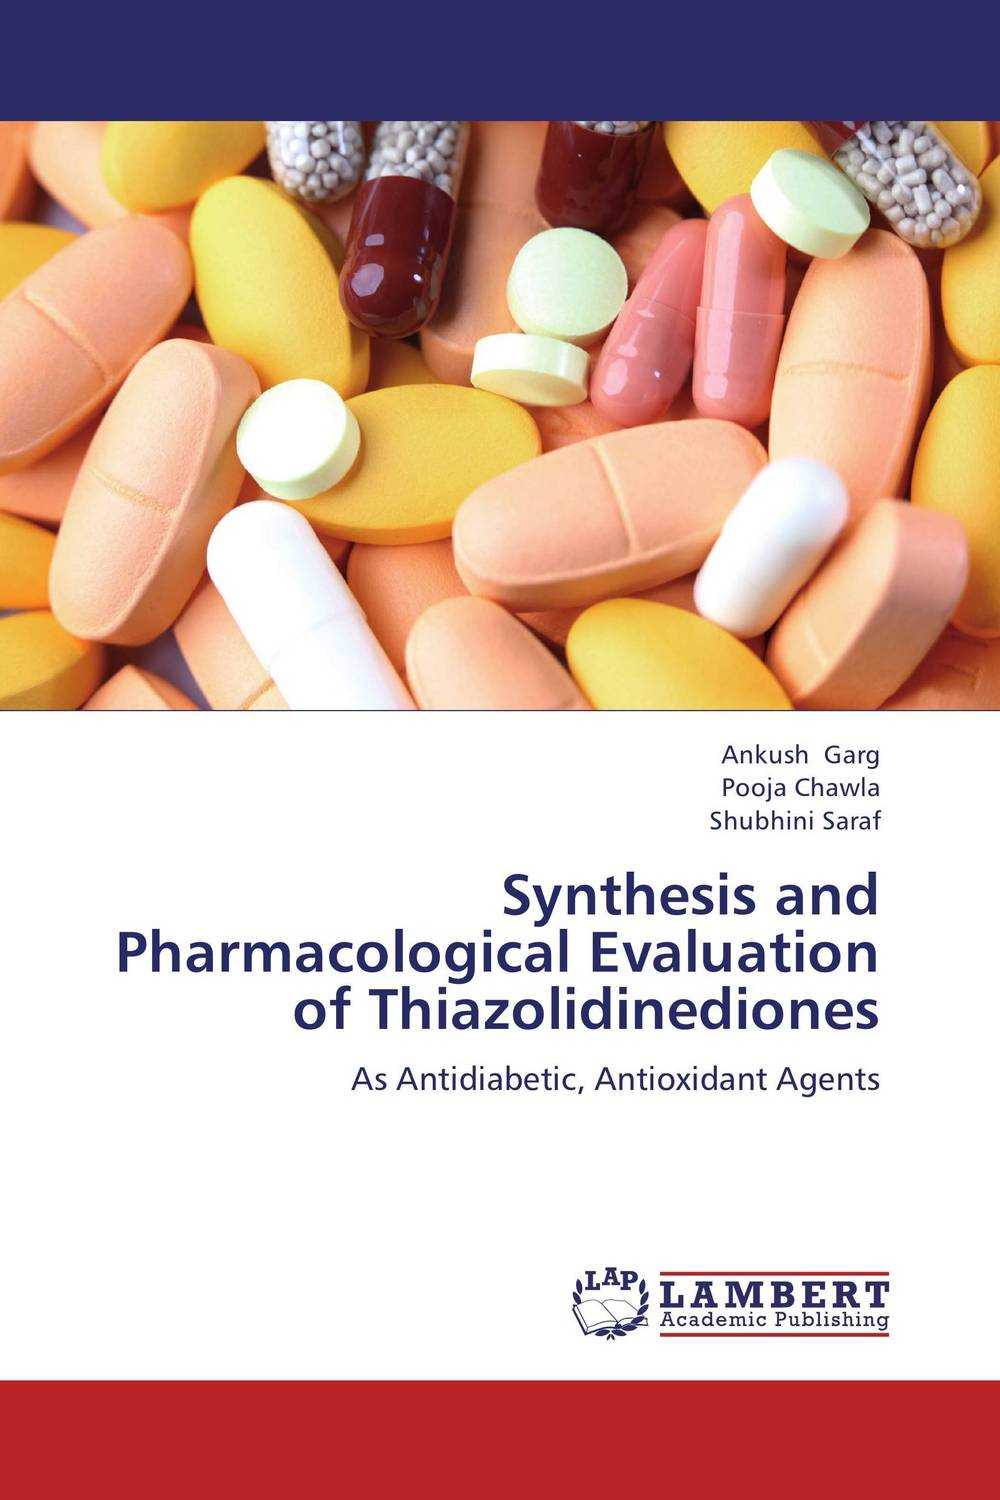 Synthesis and Pharmacological Evaluation of Thiazolidinediones